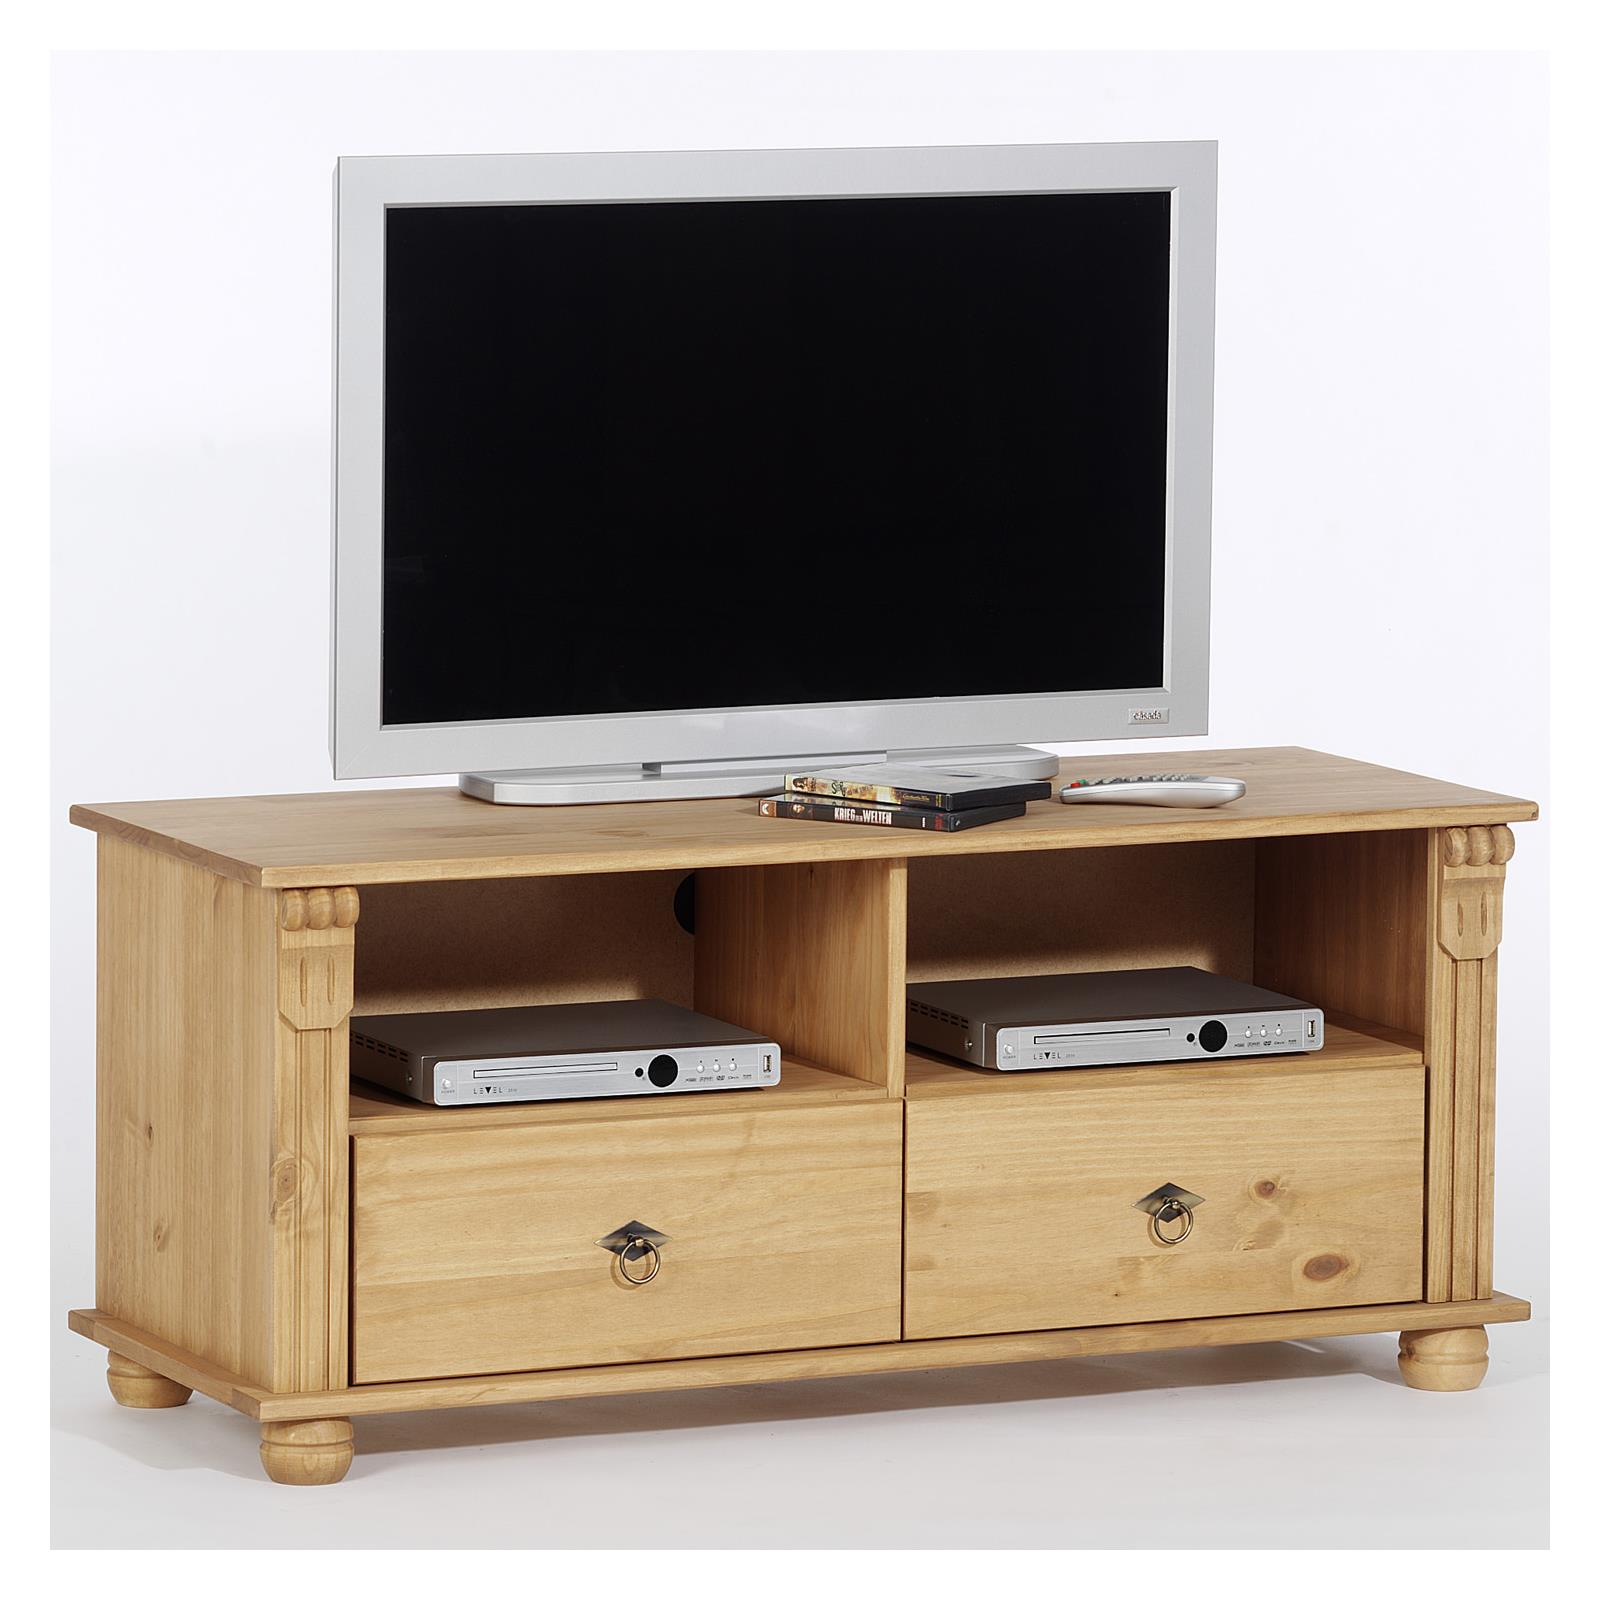 lowboard tv m bel phonom bel tv rack medienm bel hifi. Black Bedroom Furniture Sets. Home Design Ideas